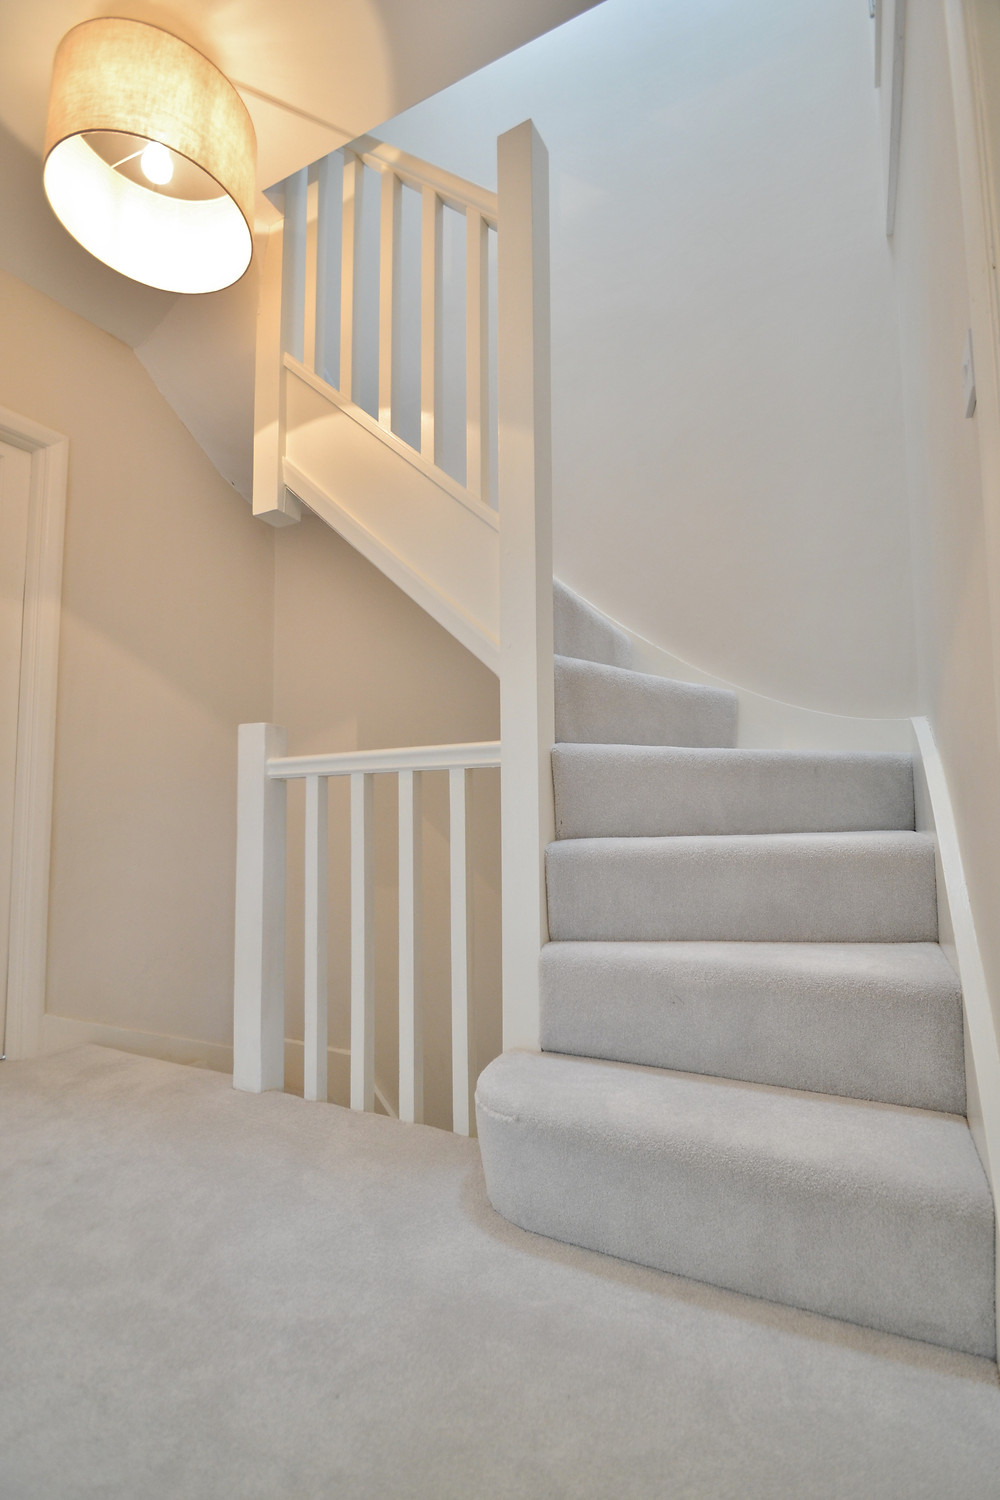 Loft Conversion Project Construction Company Project East Barnet - Hertfordshire - Stairs To The Loft